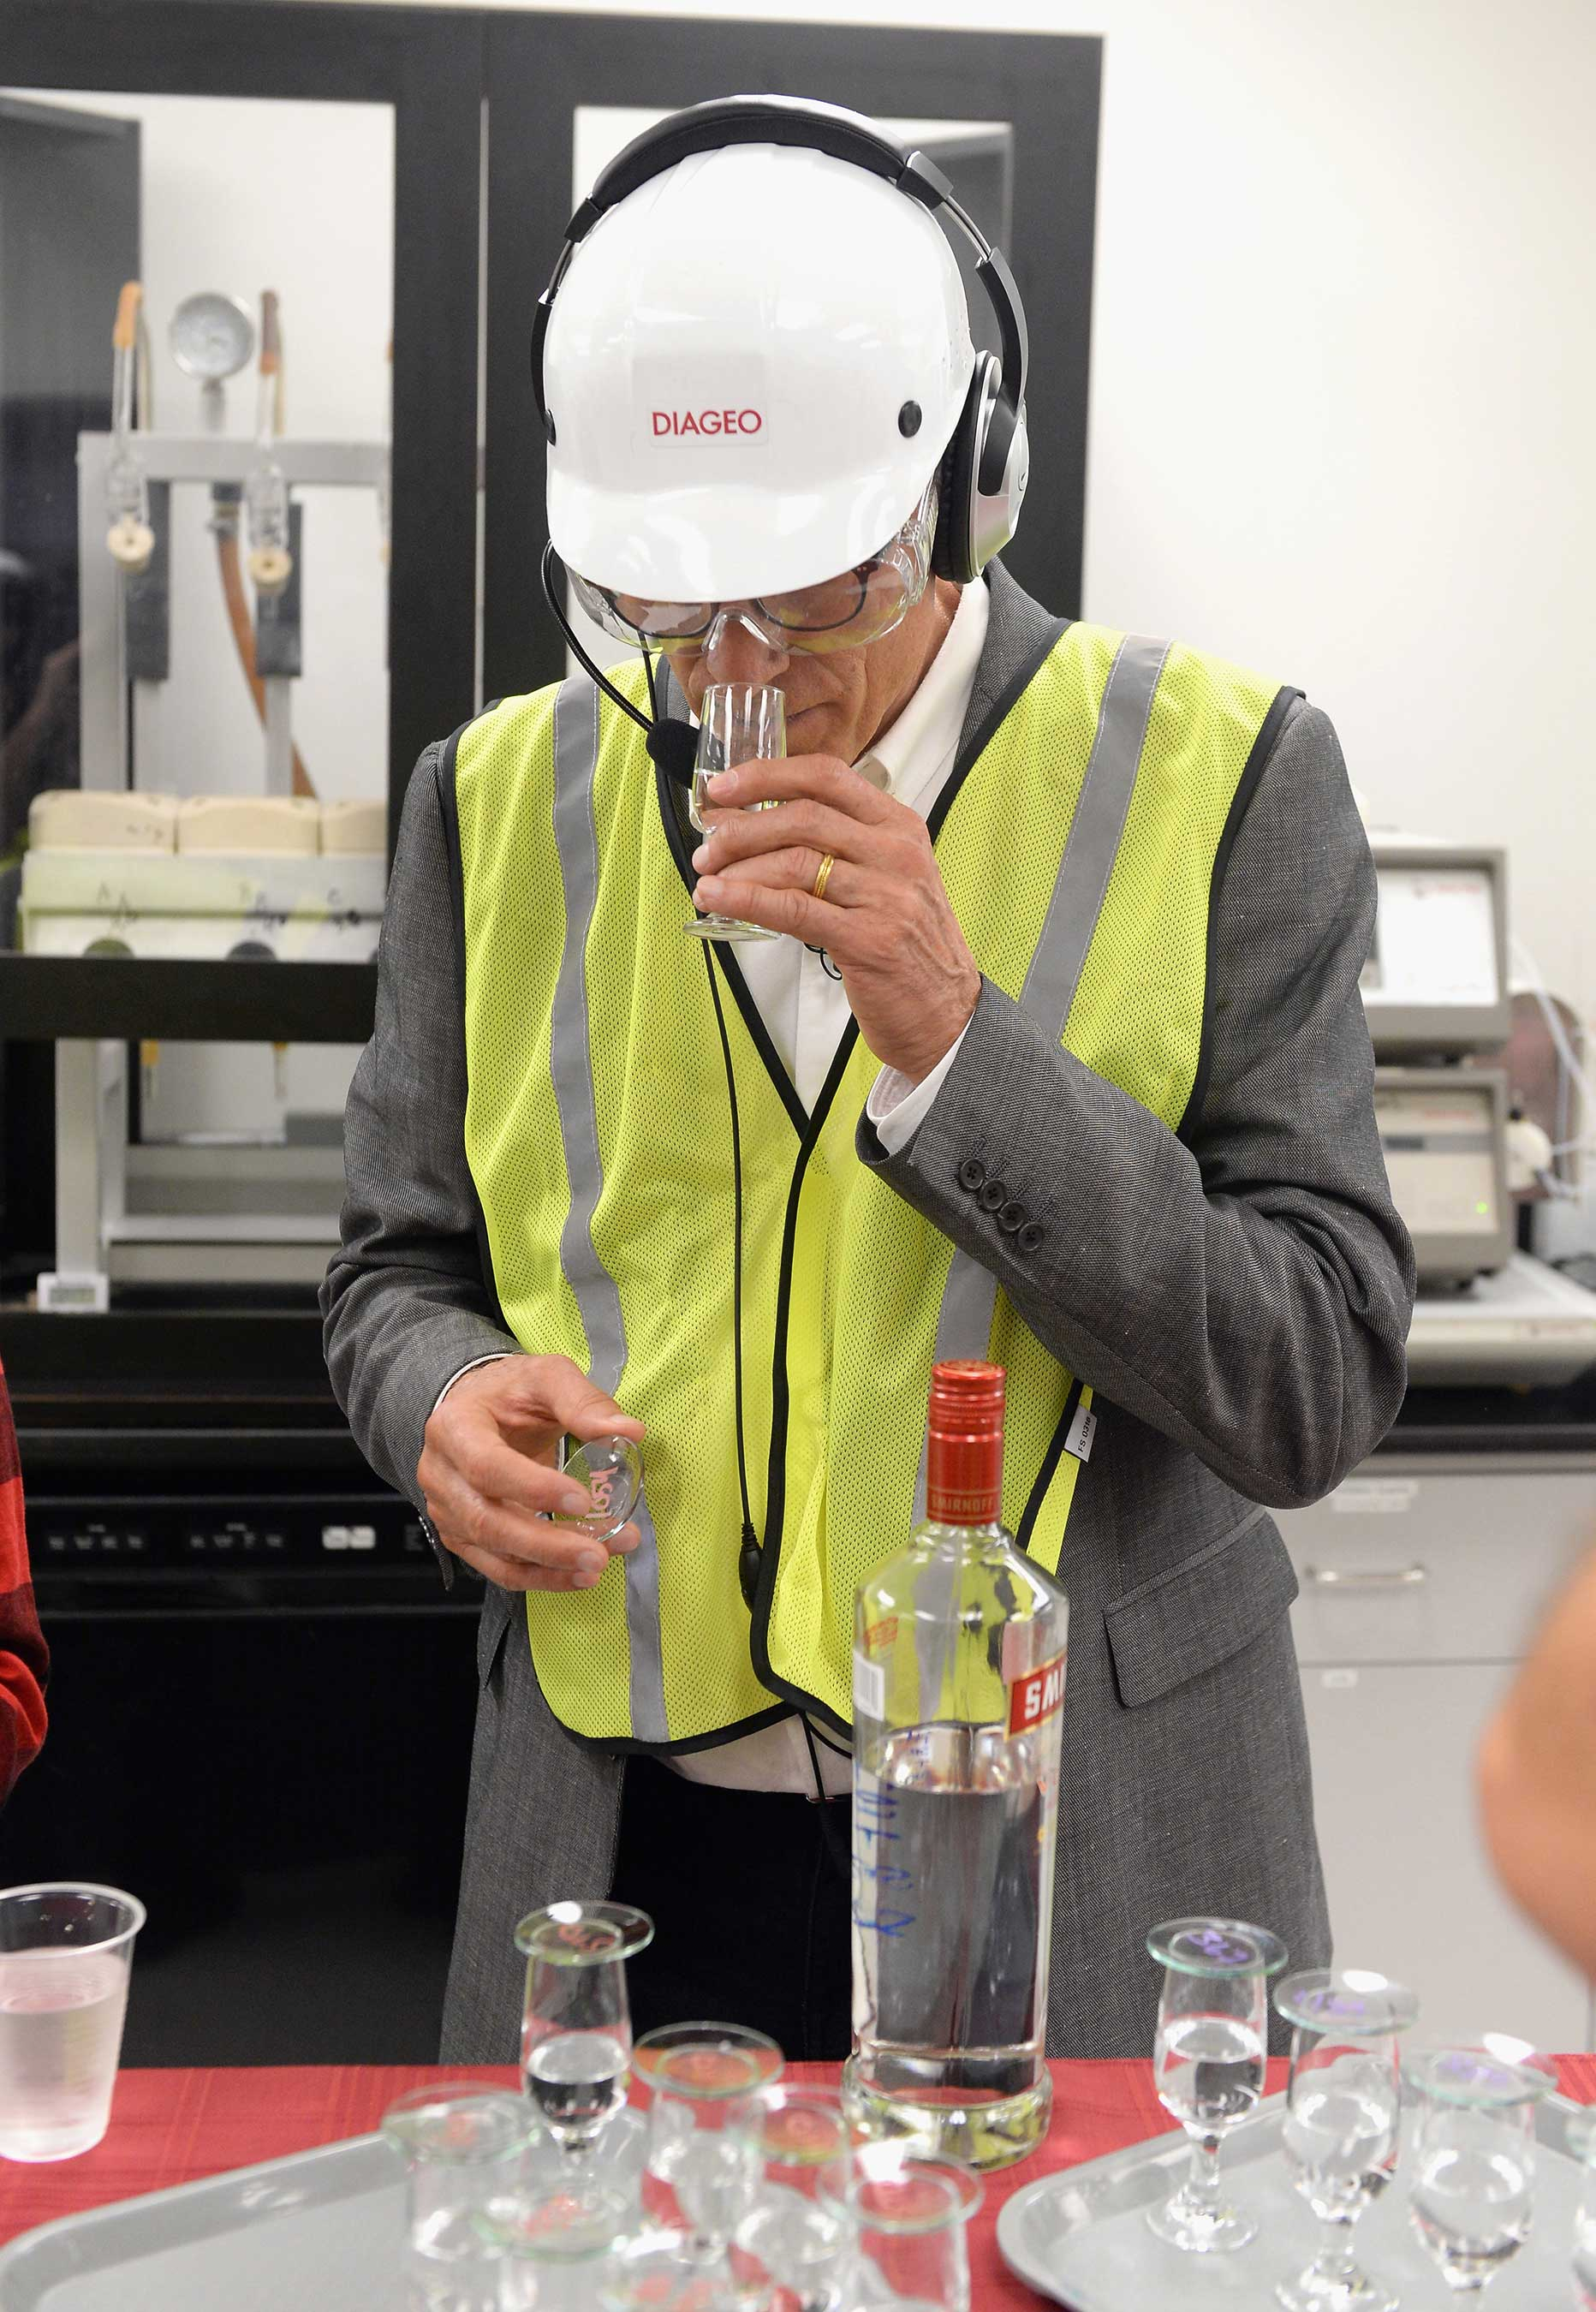 Actor and environmentalist, Ted Danson, Tours The Diageo Facility in Plainfield, Illinois to See How SMIRNOFF, America's No. 1 Vodka, Is Made First-hand on October 4, 2017